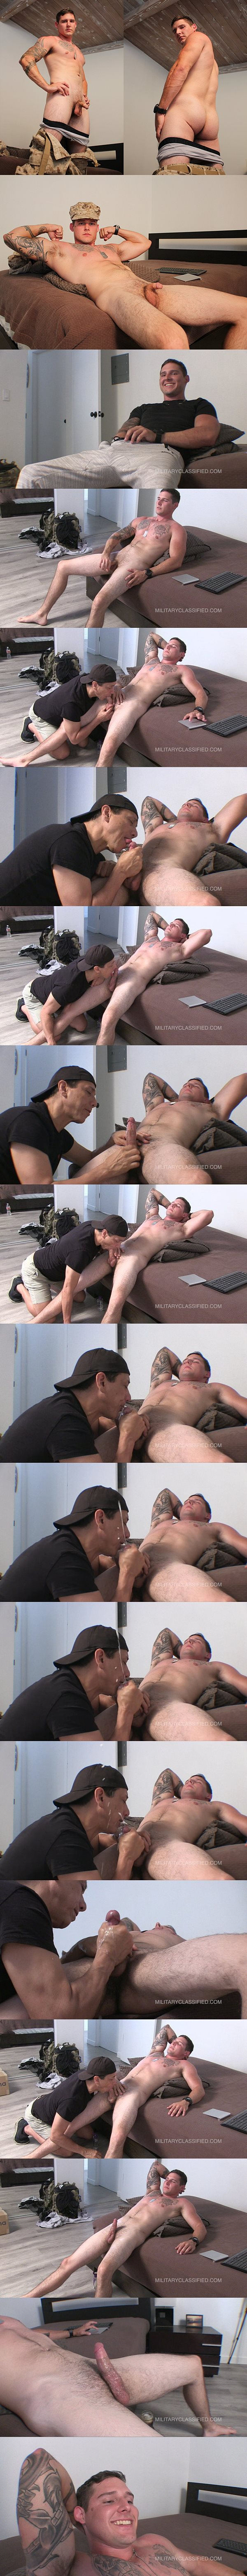 Inked straight muscle jock, EX Marine Coby (aka Jonah J at Myfriendsfeet) gets sucked and wanked before Rob strokes a big juicy load out of Coby's hard cock at Militaryclassified 02